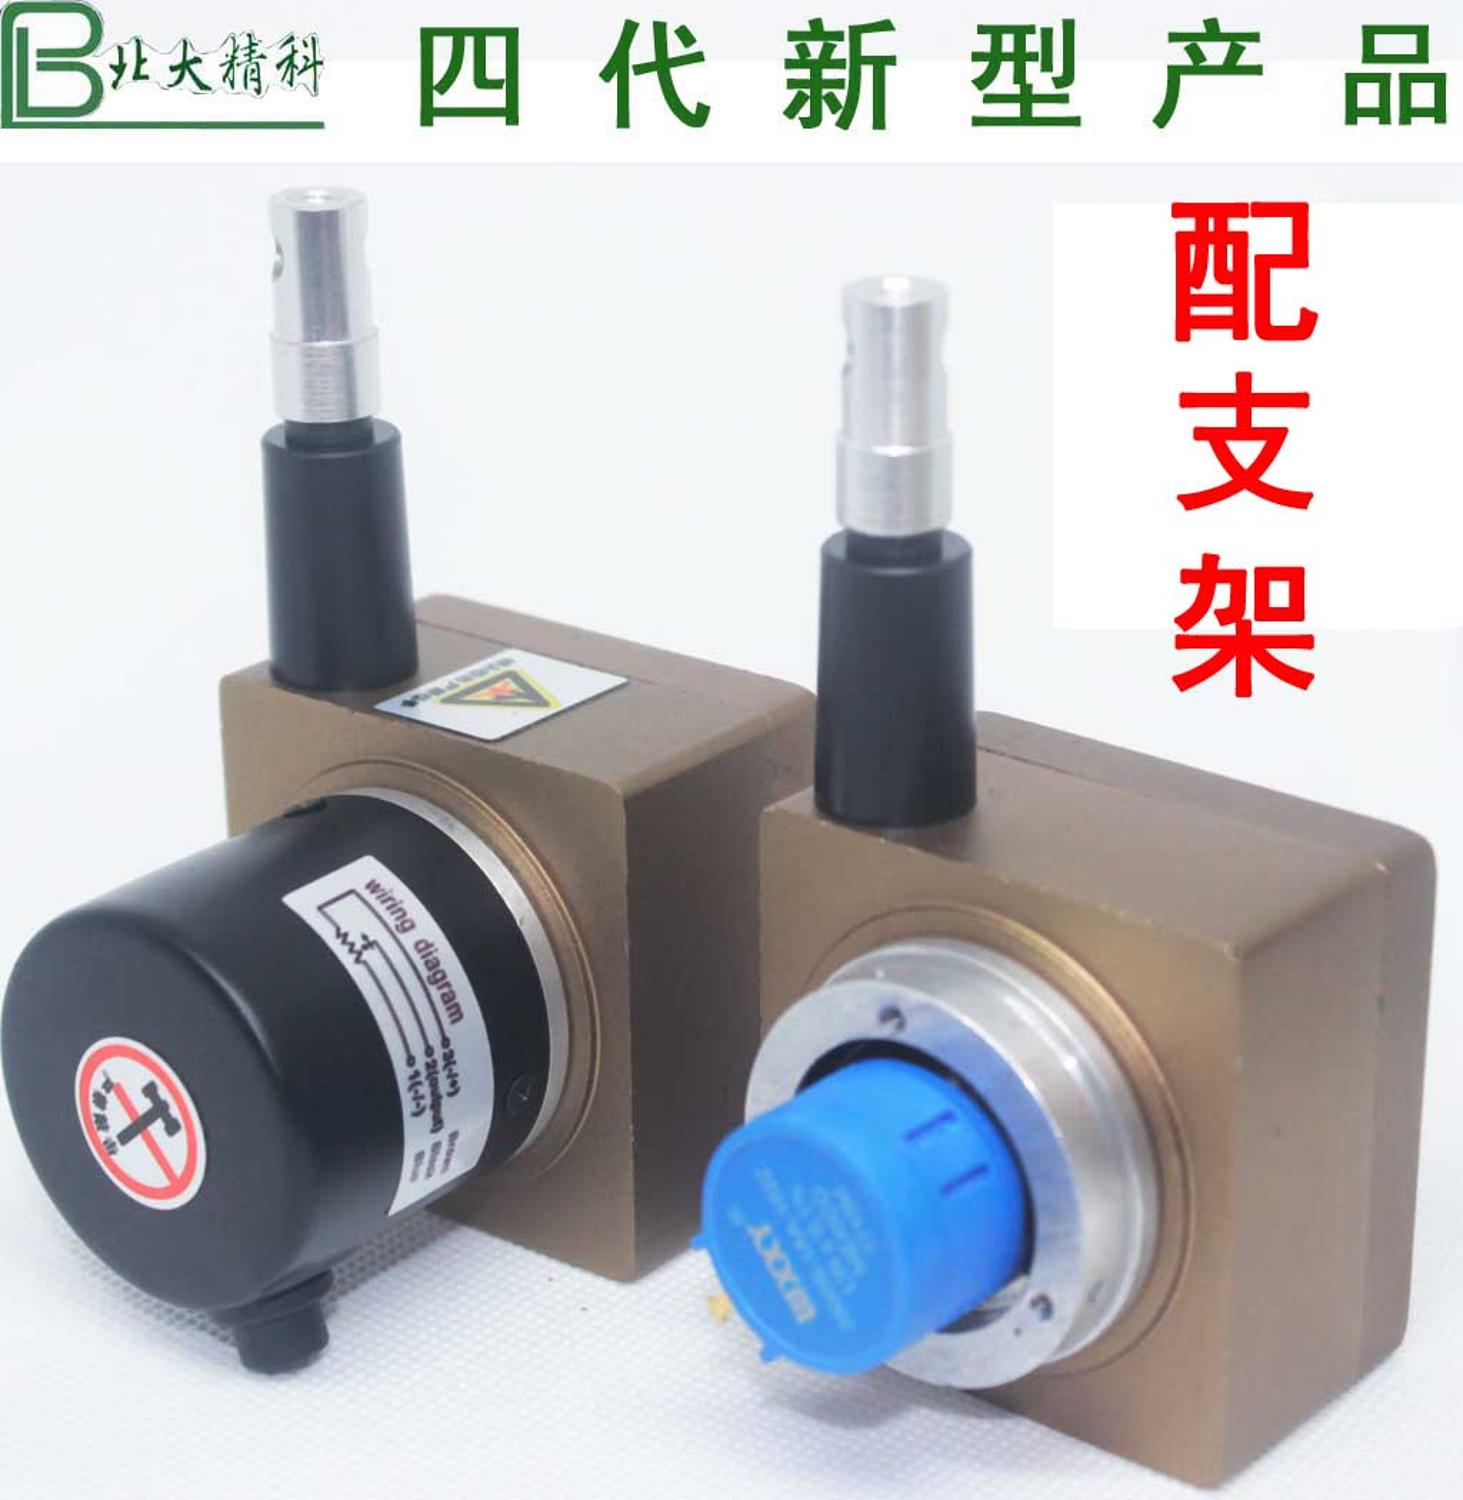 Pull Cord Encoder Pull Cord Electronic Scale WXY31 Range 3000mm Pull Cord Encoder Pull Cord Sensor Displacement Sensor